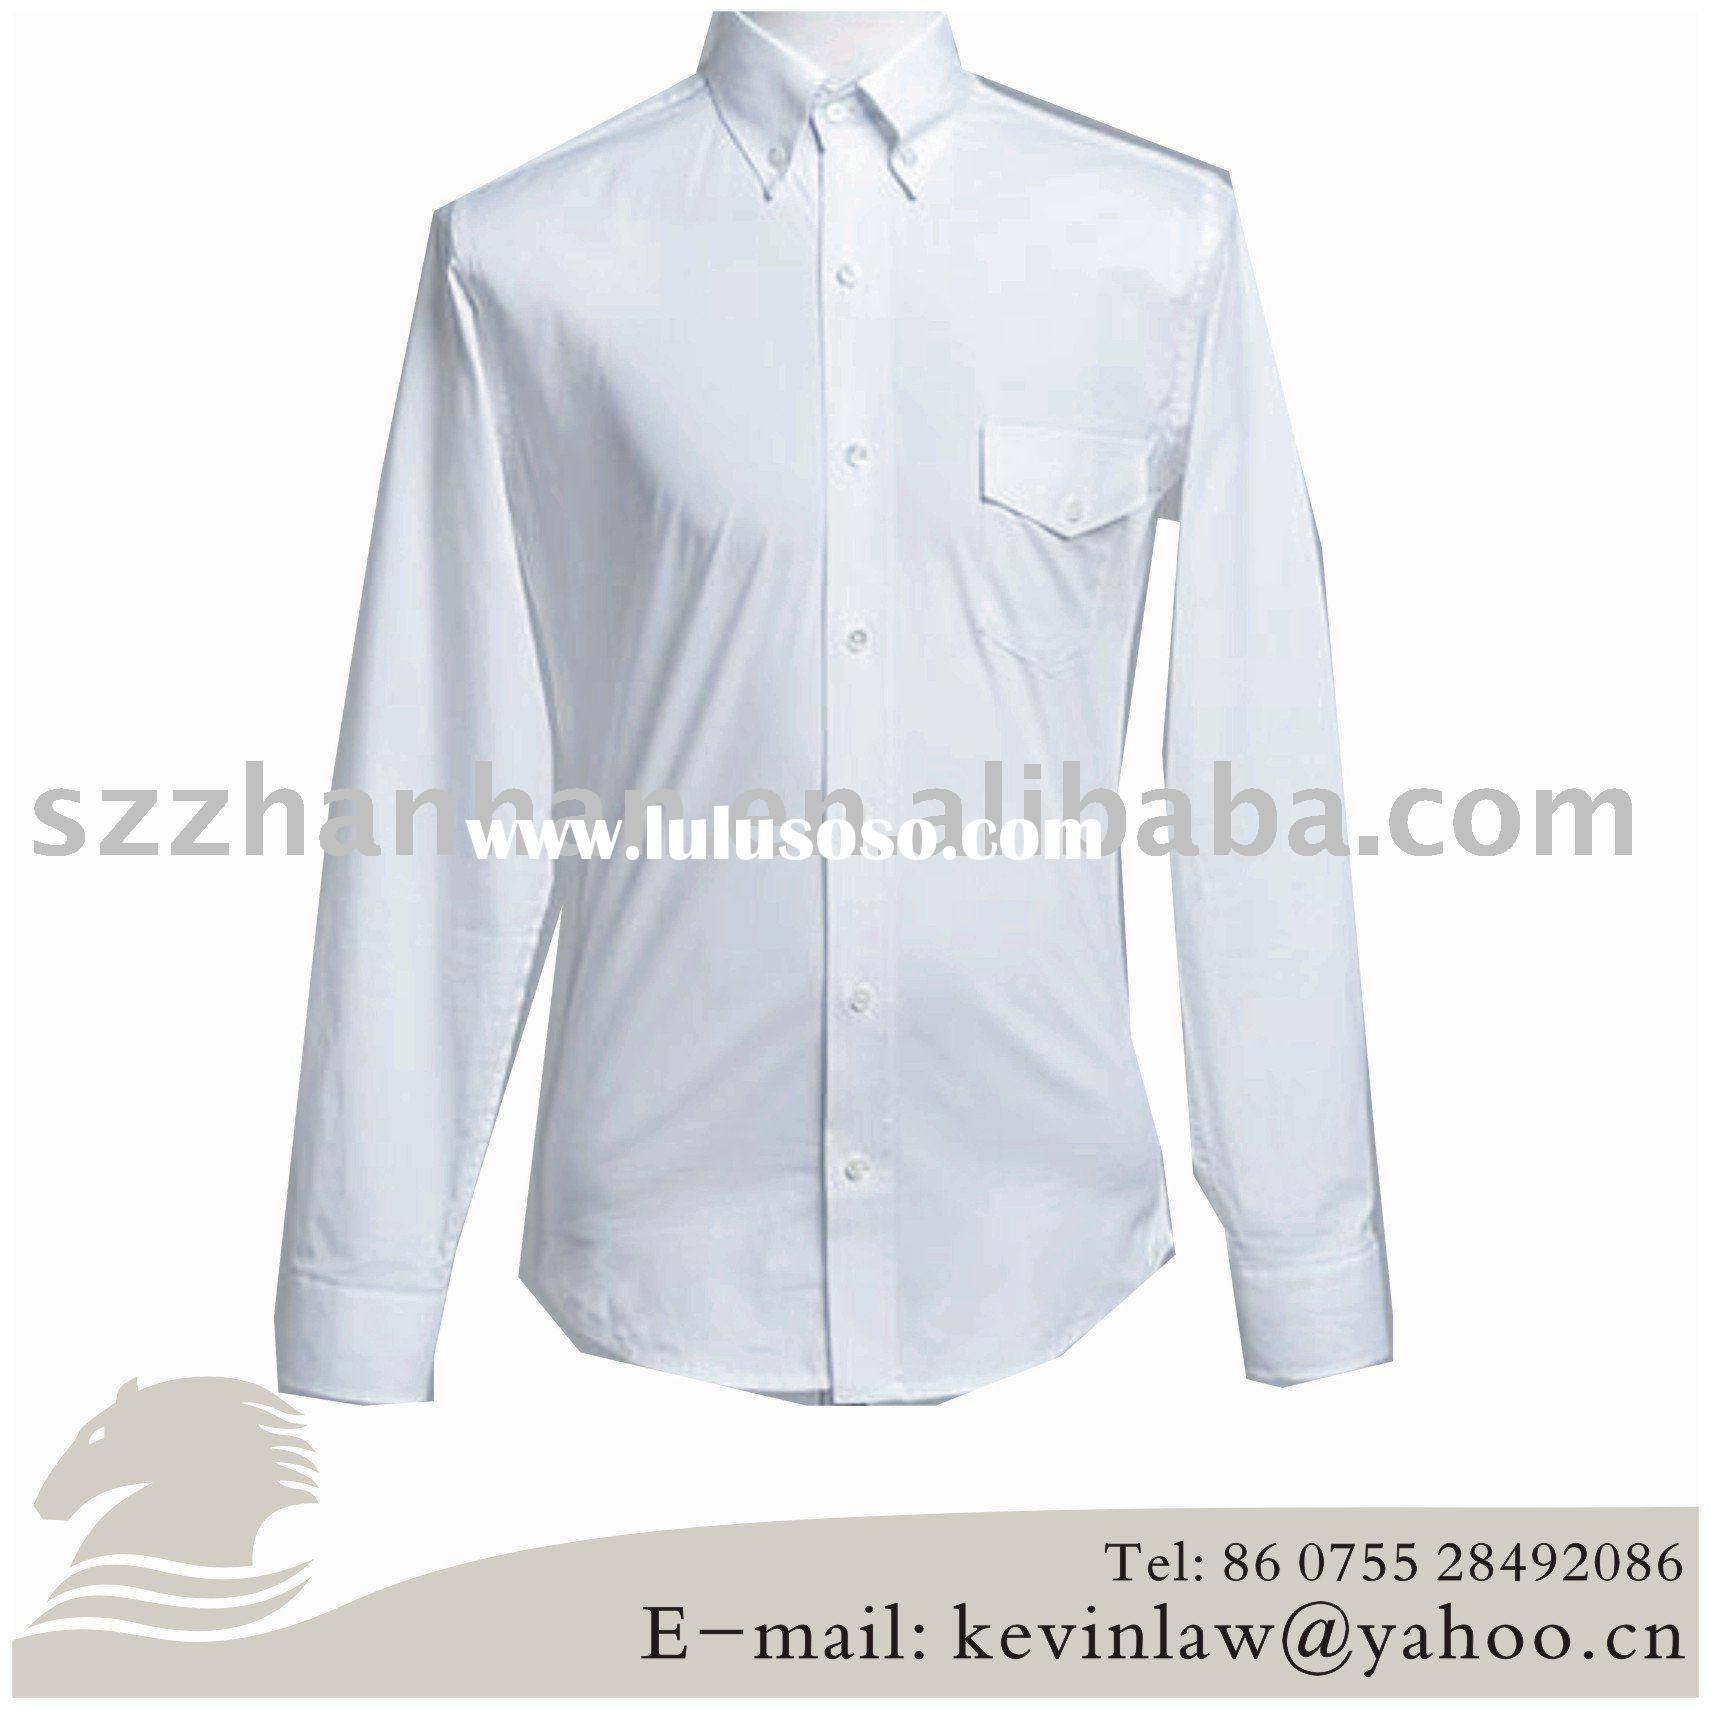 100% cotton long sleeve white solid color button down collar dress shirts.